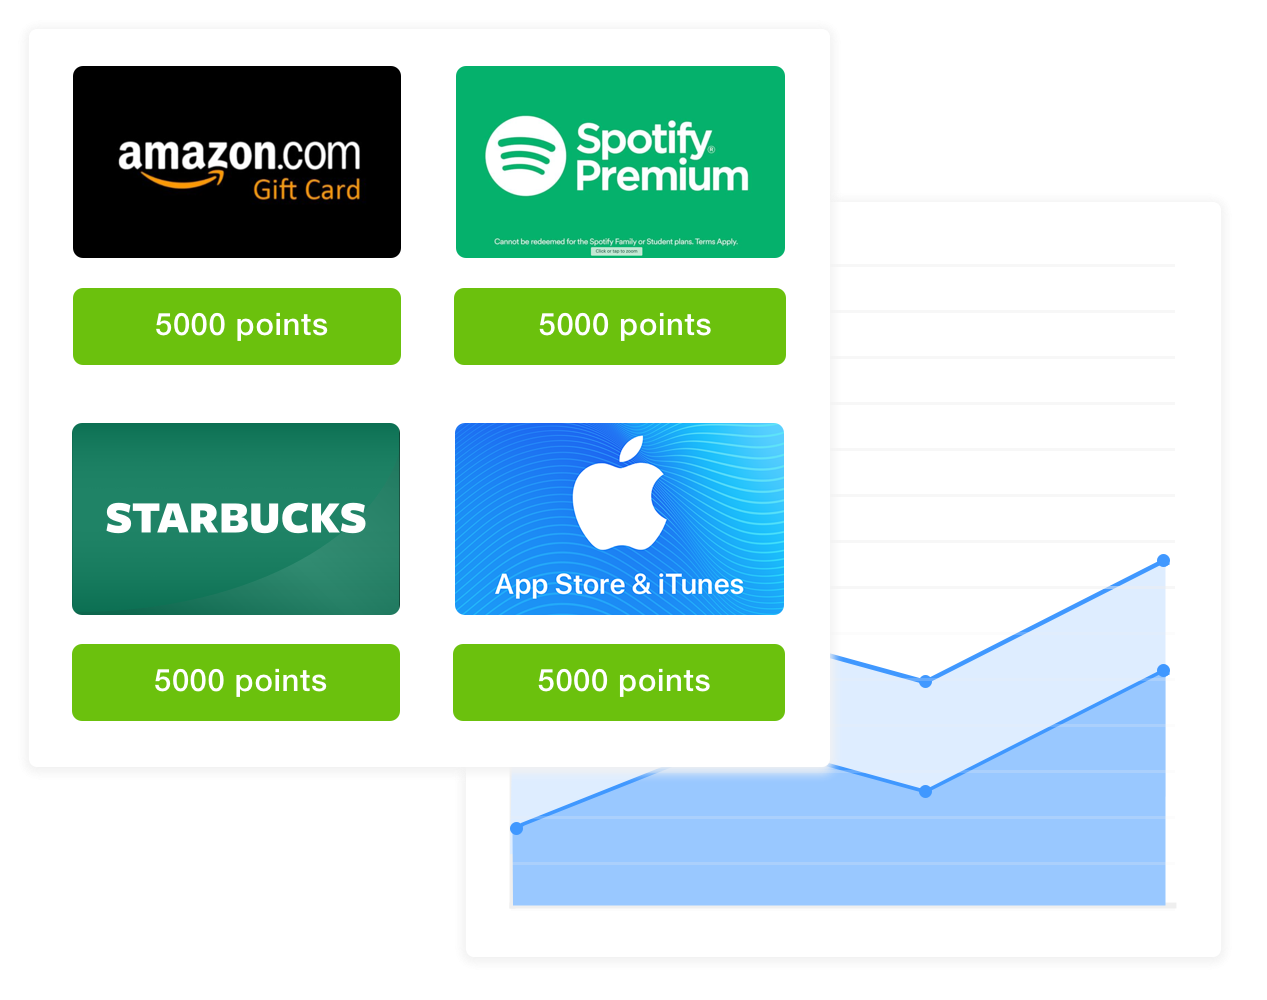 Brand ambassador points and rewards system